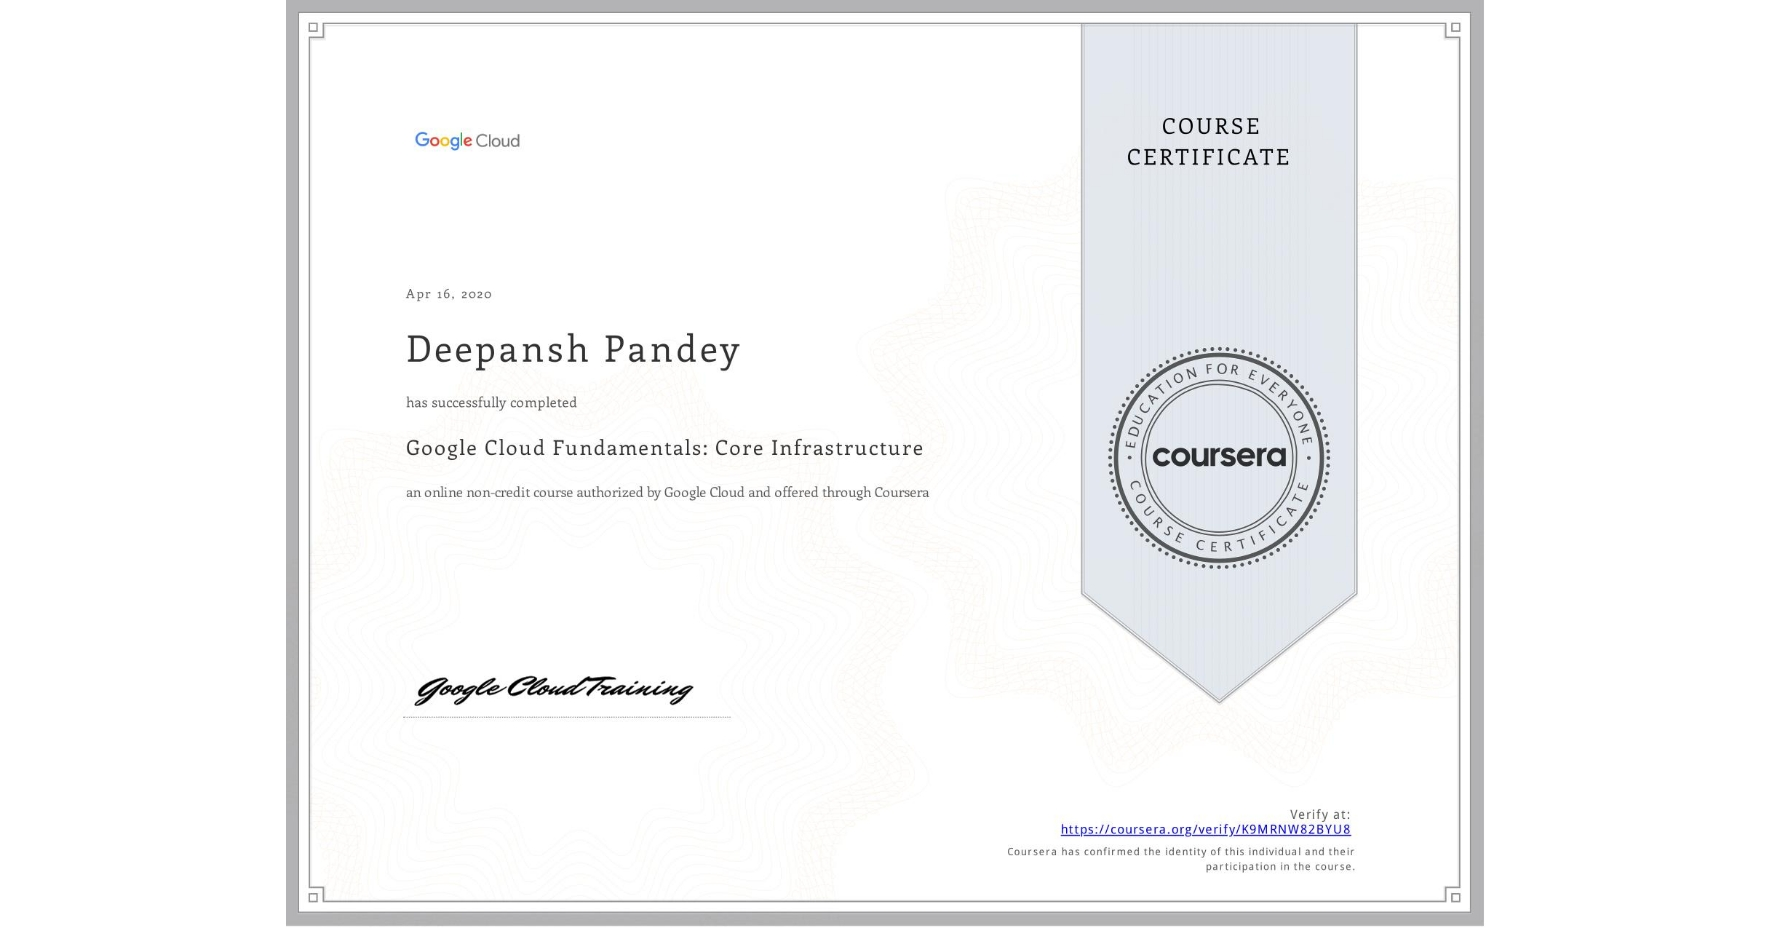 View certificate for Deepansh Pandey, Google Cloud Platform Fundamentals: Core Infrastructure, an online non-credit course authorized by Google Cloud and offered through Coursera